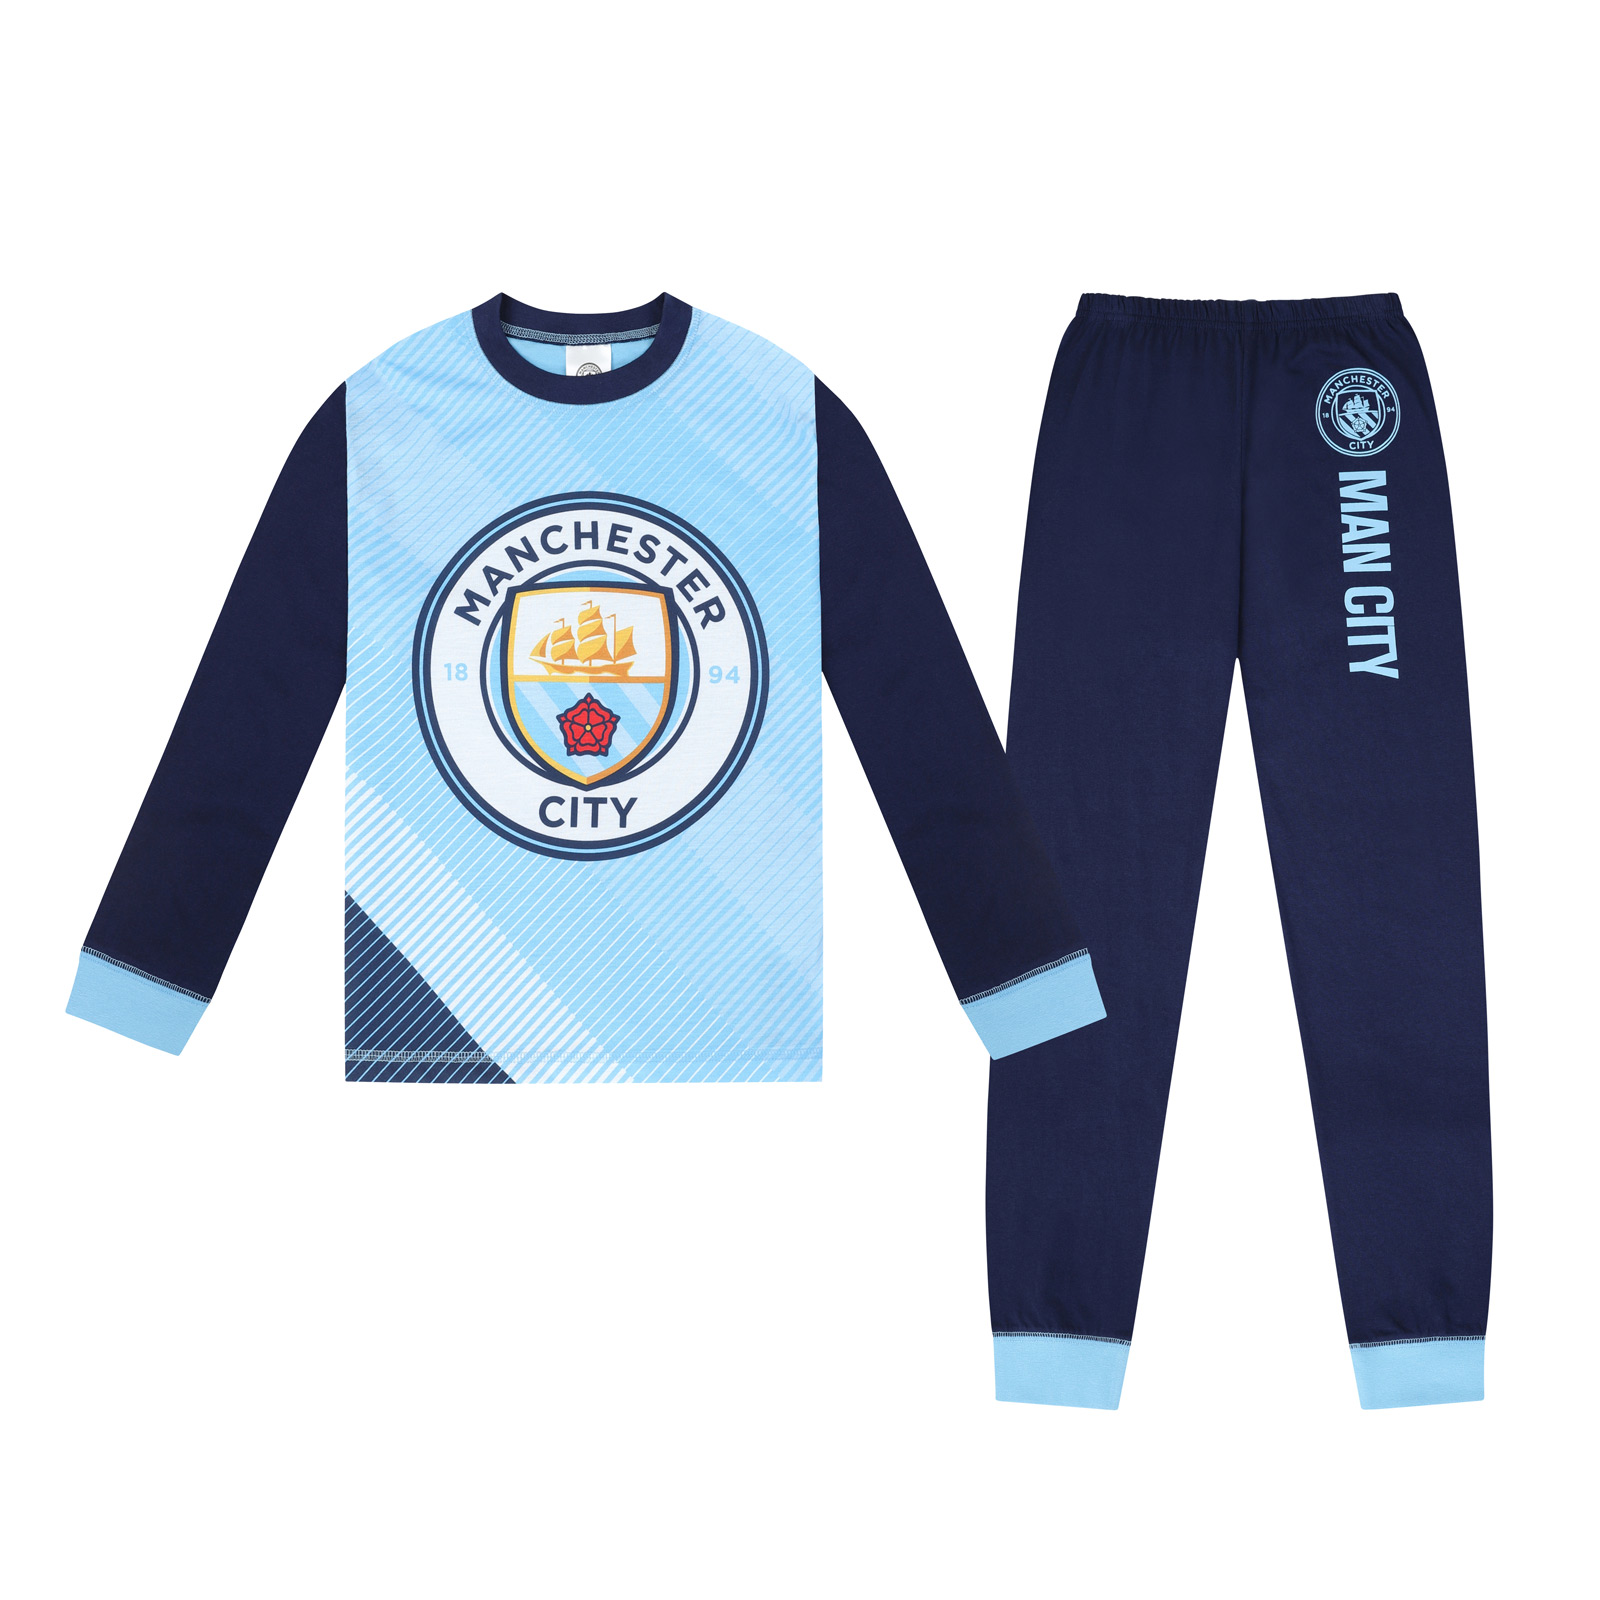 West Ham United Fc Official Gift Boys Sublimation Short Pajamas 10-11 Years Blue